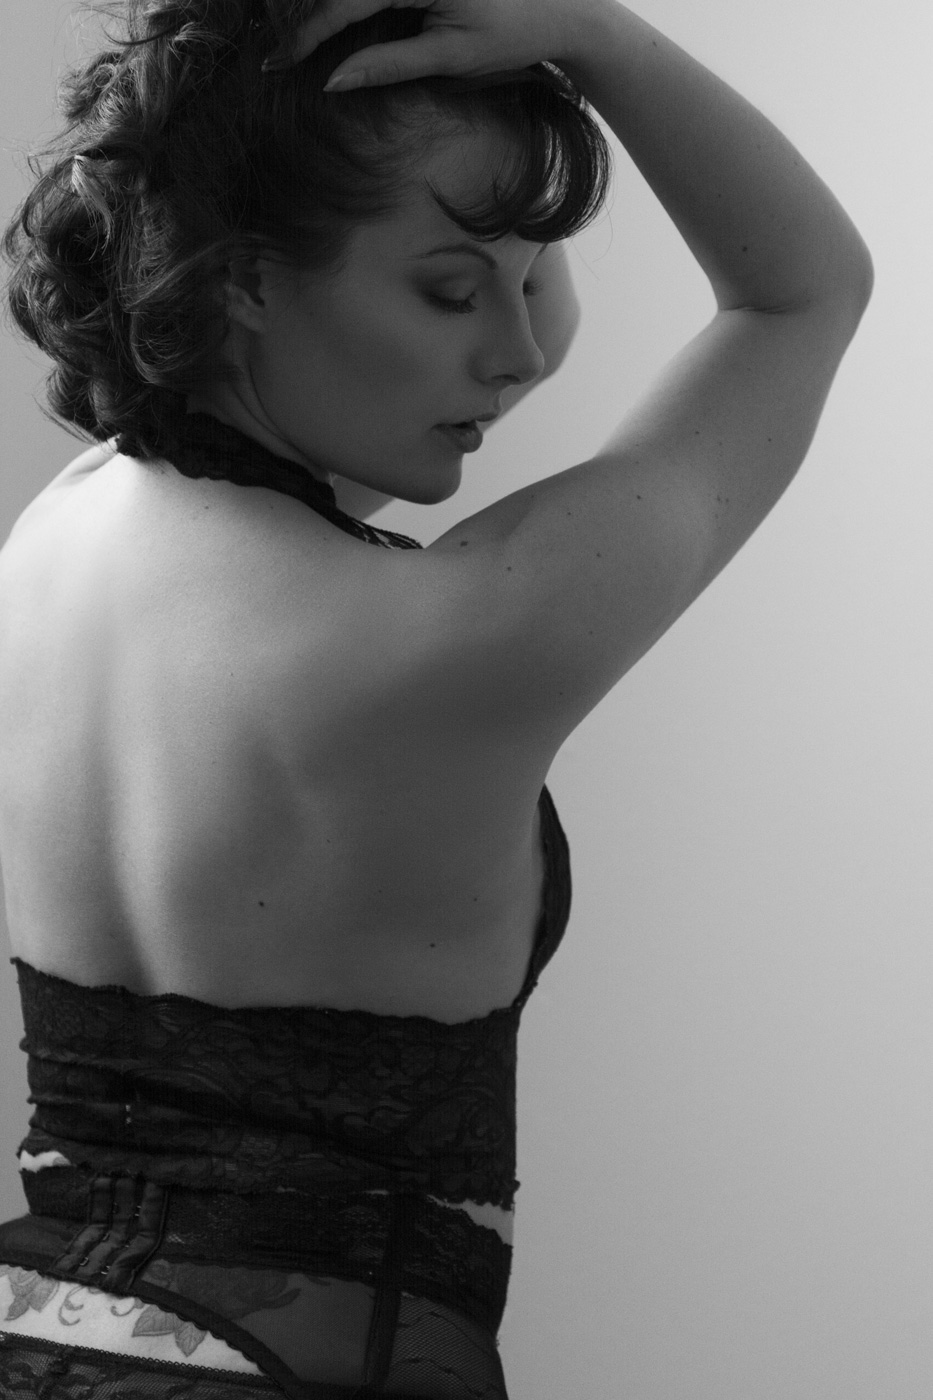 Black and White Boudoir Photography Williams Bay, WI